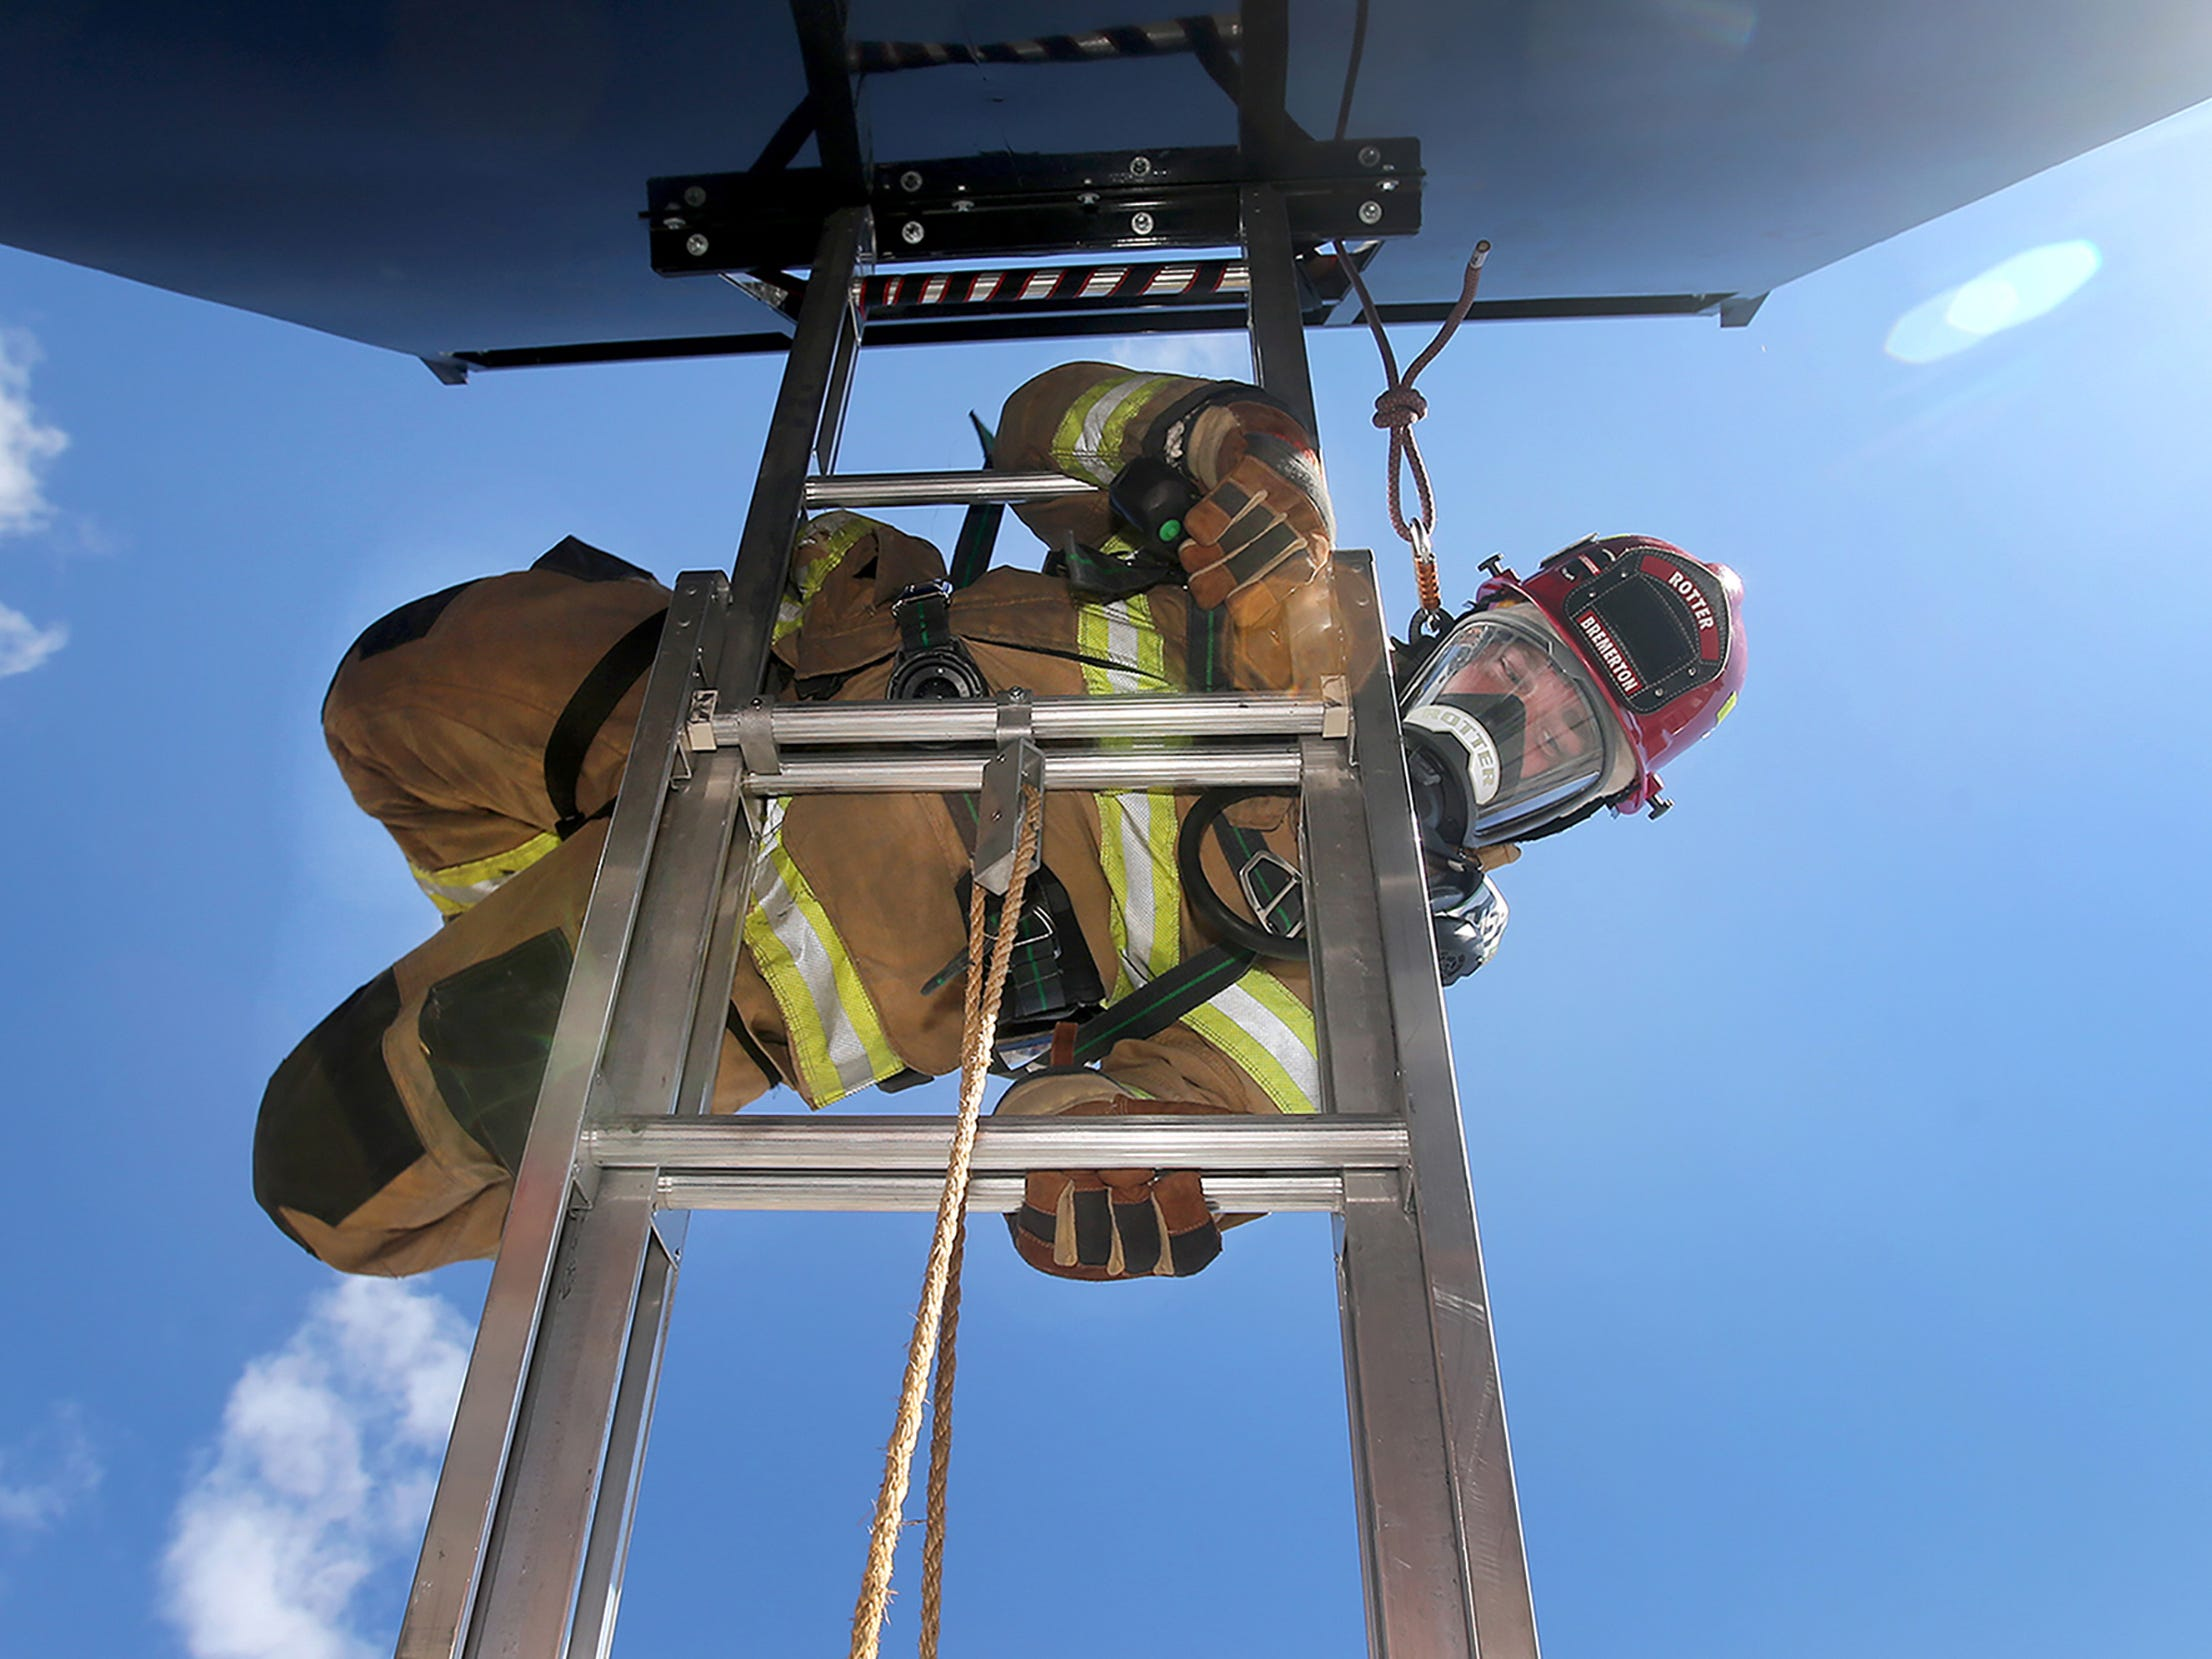 Bremerton fire Lt. Chris Rotter exits down a ladder as he practices an emergency upper floor ladder escape on Wednesday, September 19, 2018 at the Bremerton Readiness Center. The training is to teach firefighters escape routes quickly from a window.